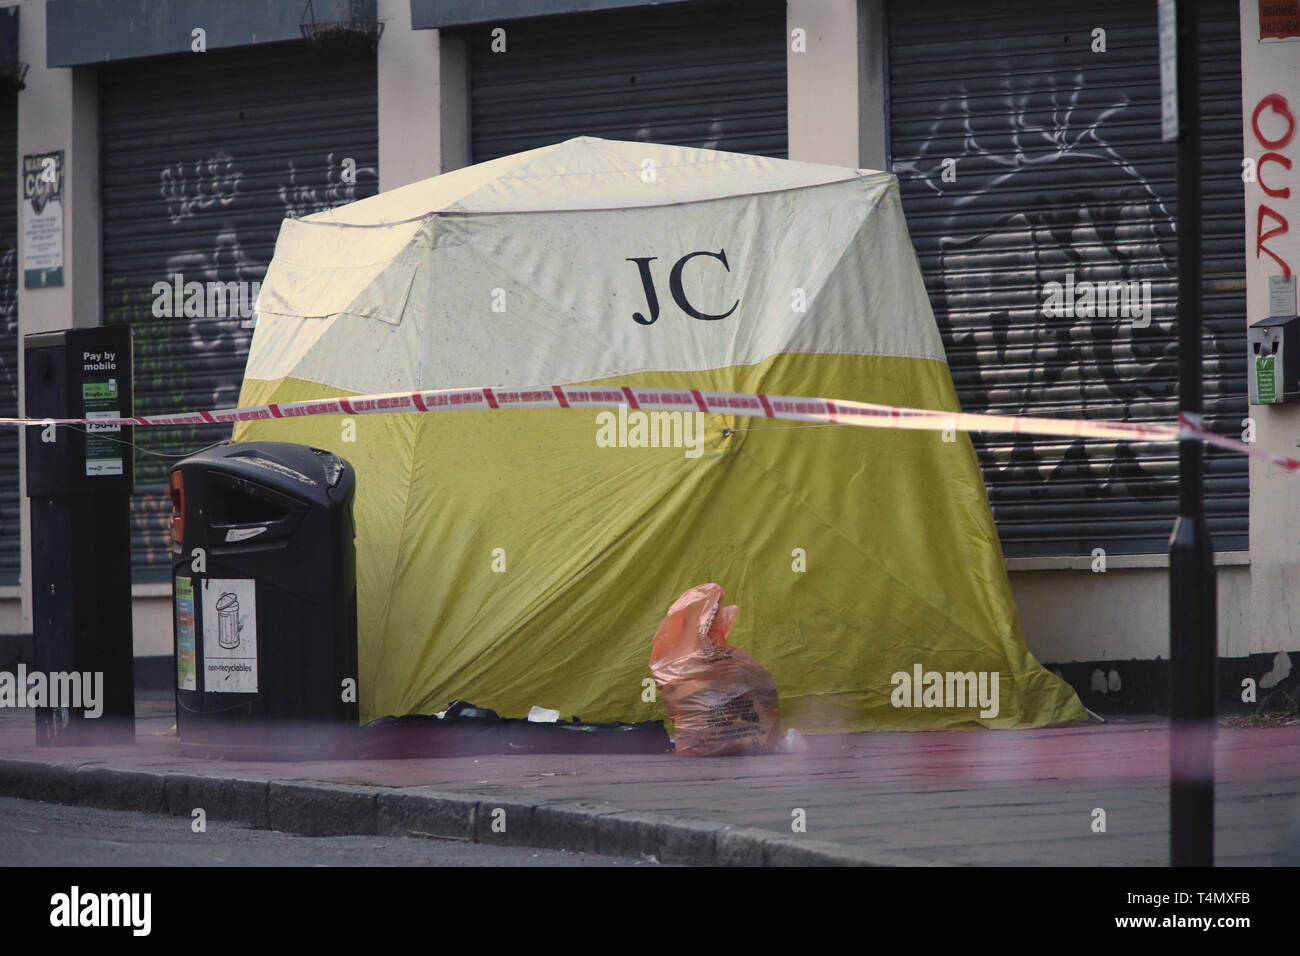 Police Tent Stock Photos & Police Tent Stock Images - Alamy